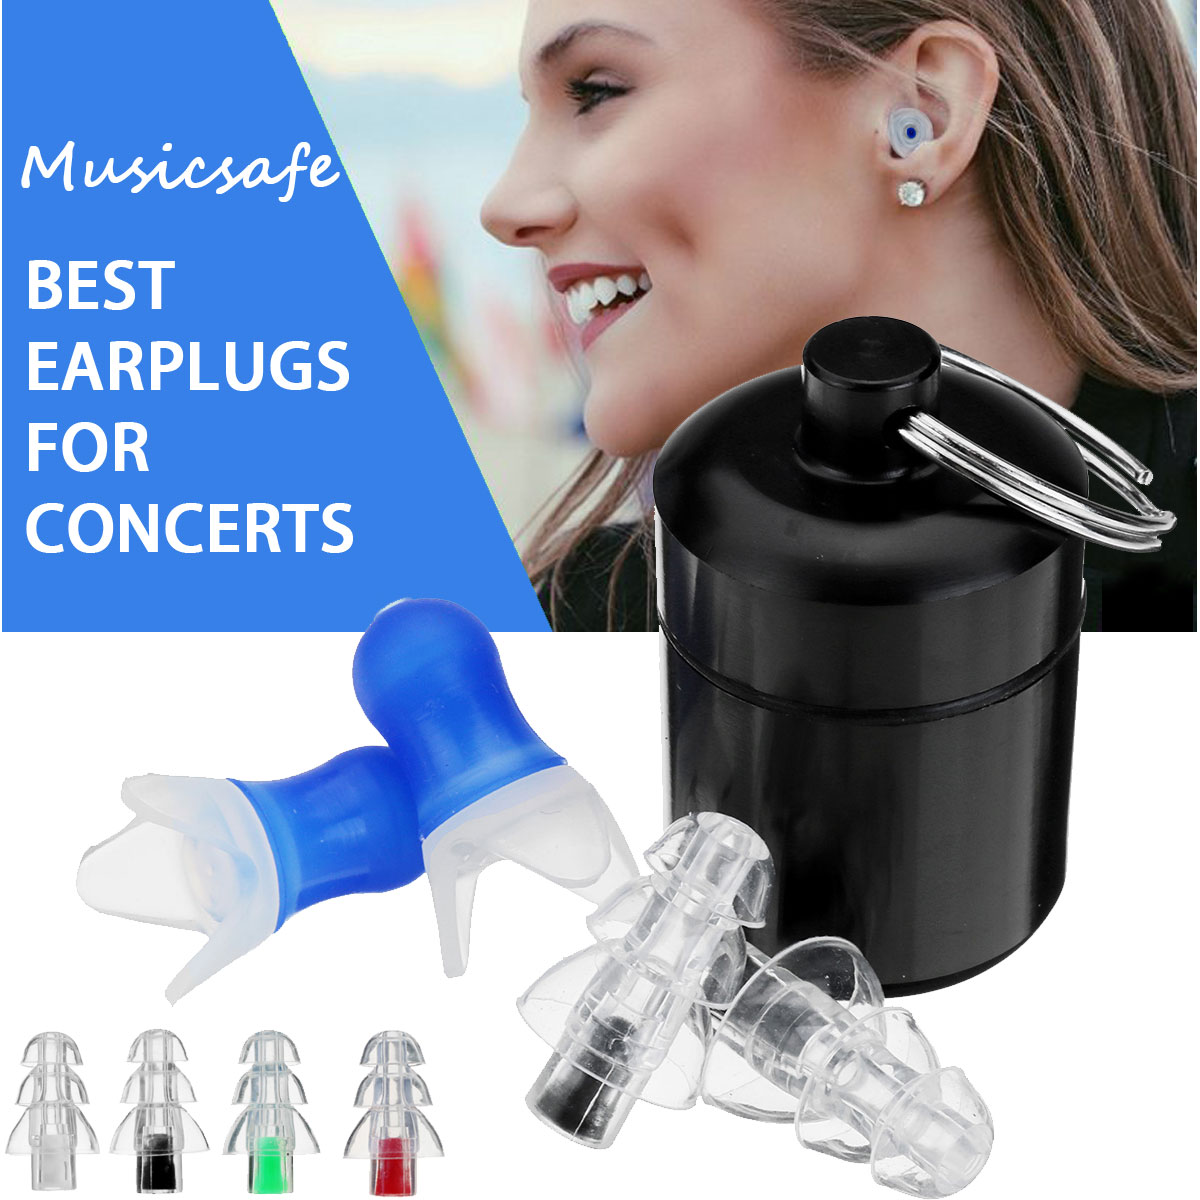 NEW 2Pcs Noise Cancelling Earplugs Hearing Protection Reusable Silicone Ear Plugs For Sleep Concerts Musician Bar Drummer 1 pair ear plug silicone ear plugs anti noise earplugs for sleeping ear protector motorcycle drummer musician concerts earbuds